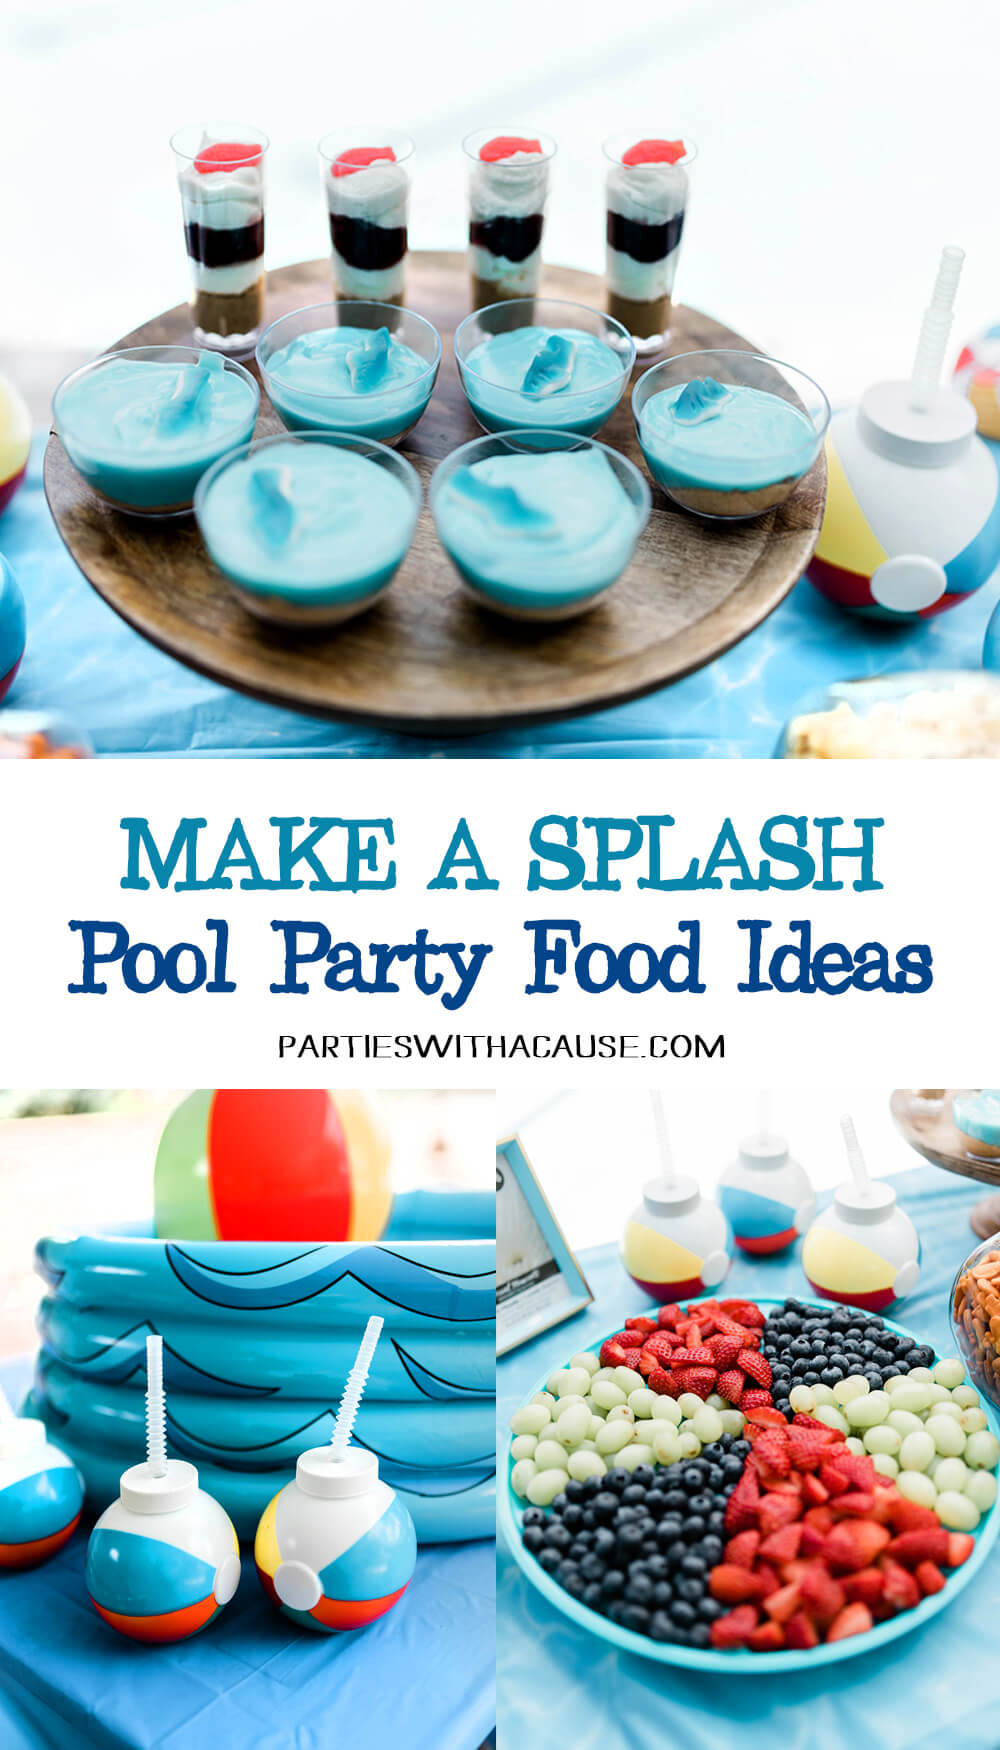 Make a splash pool party food ideas